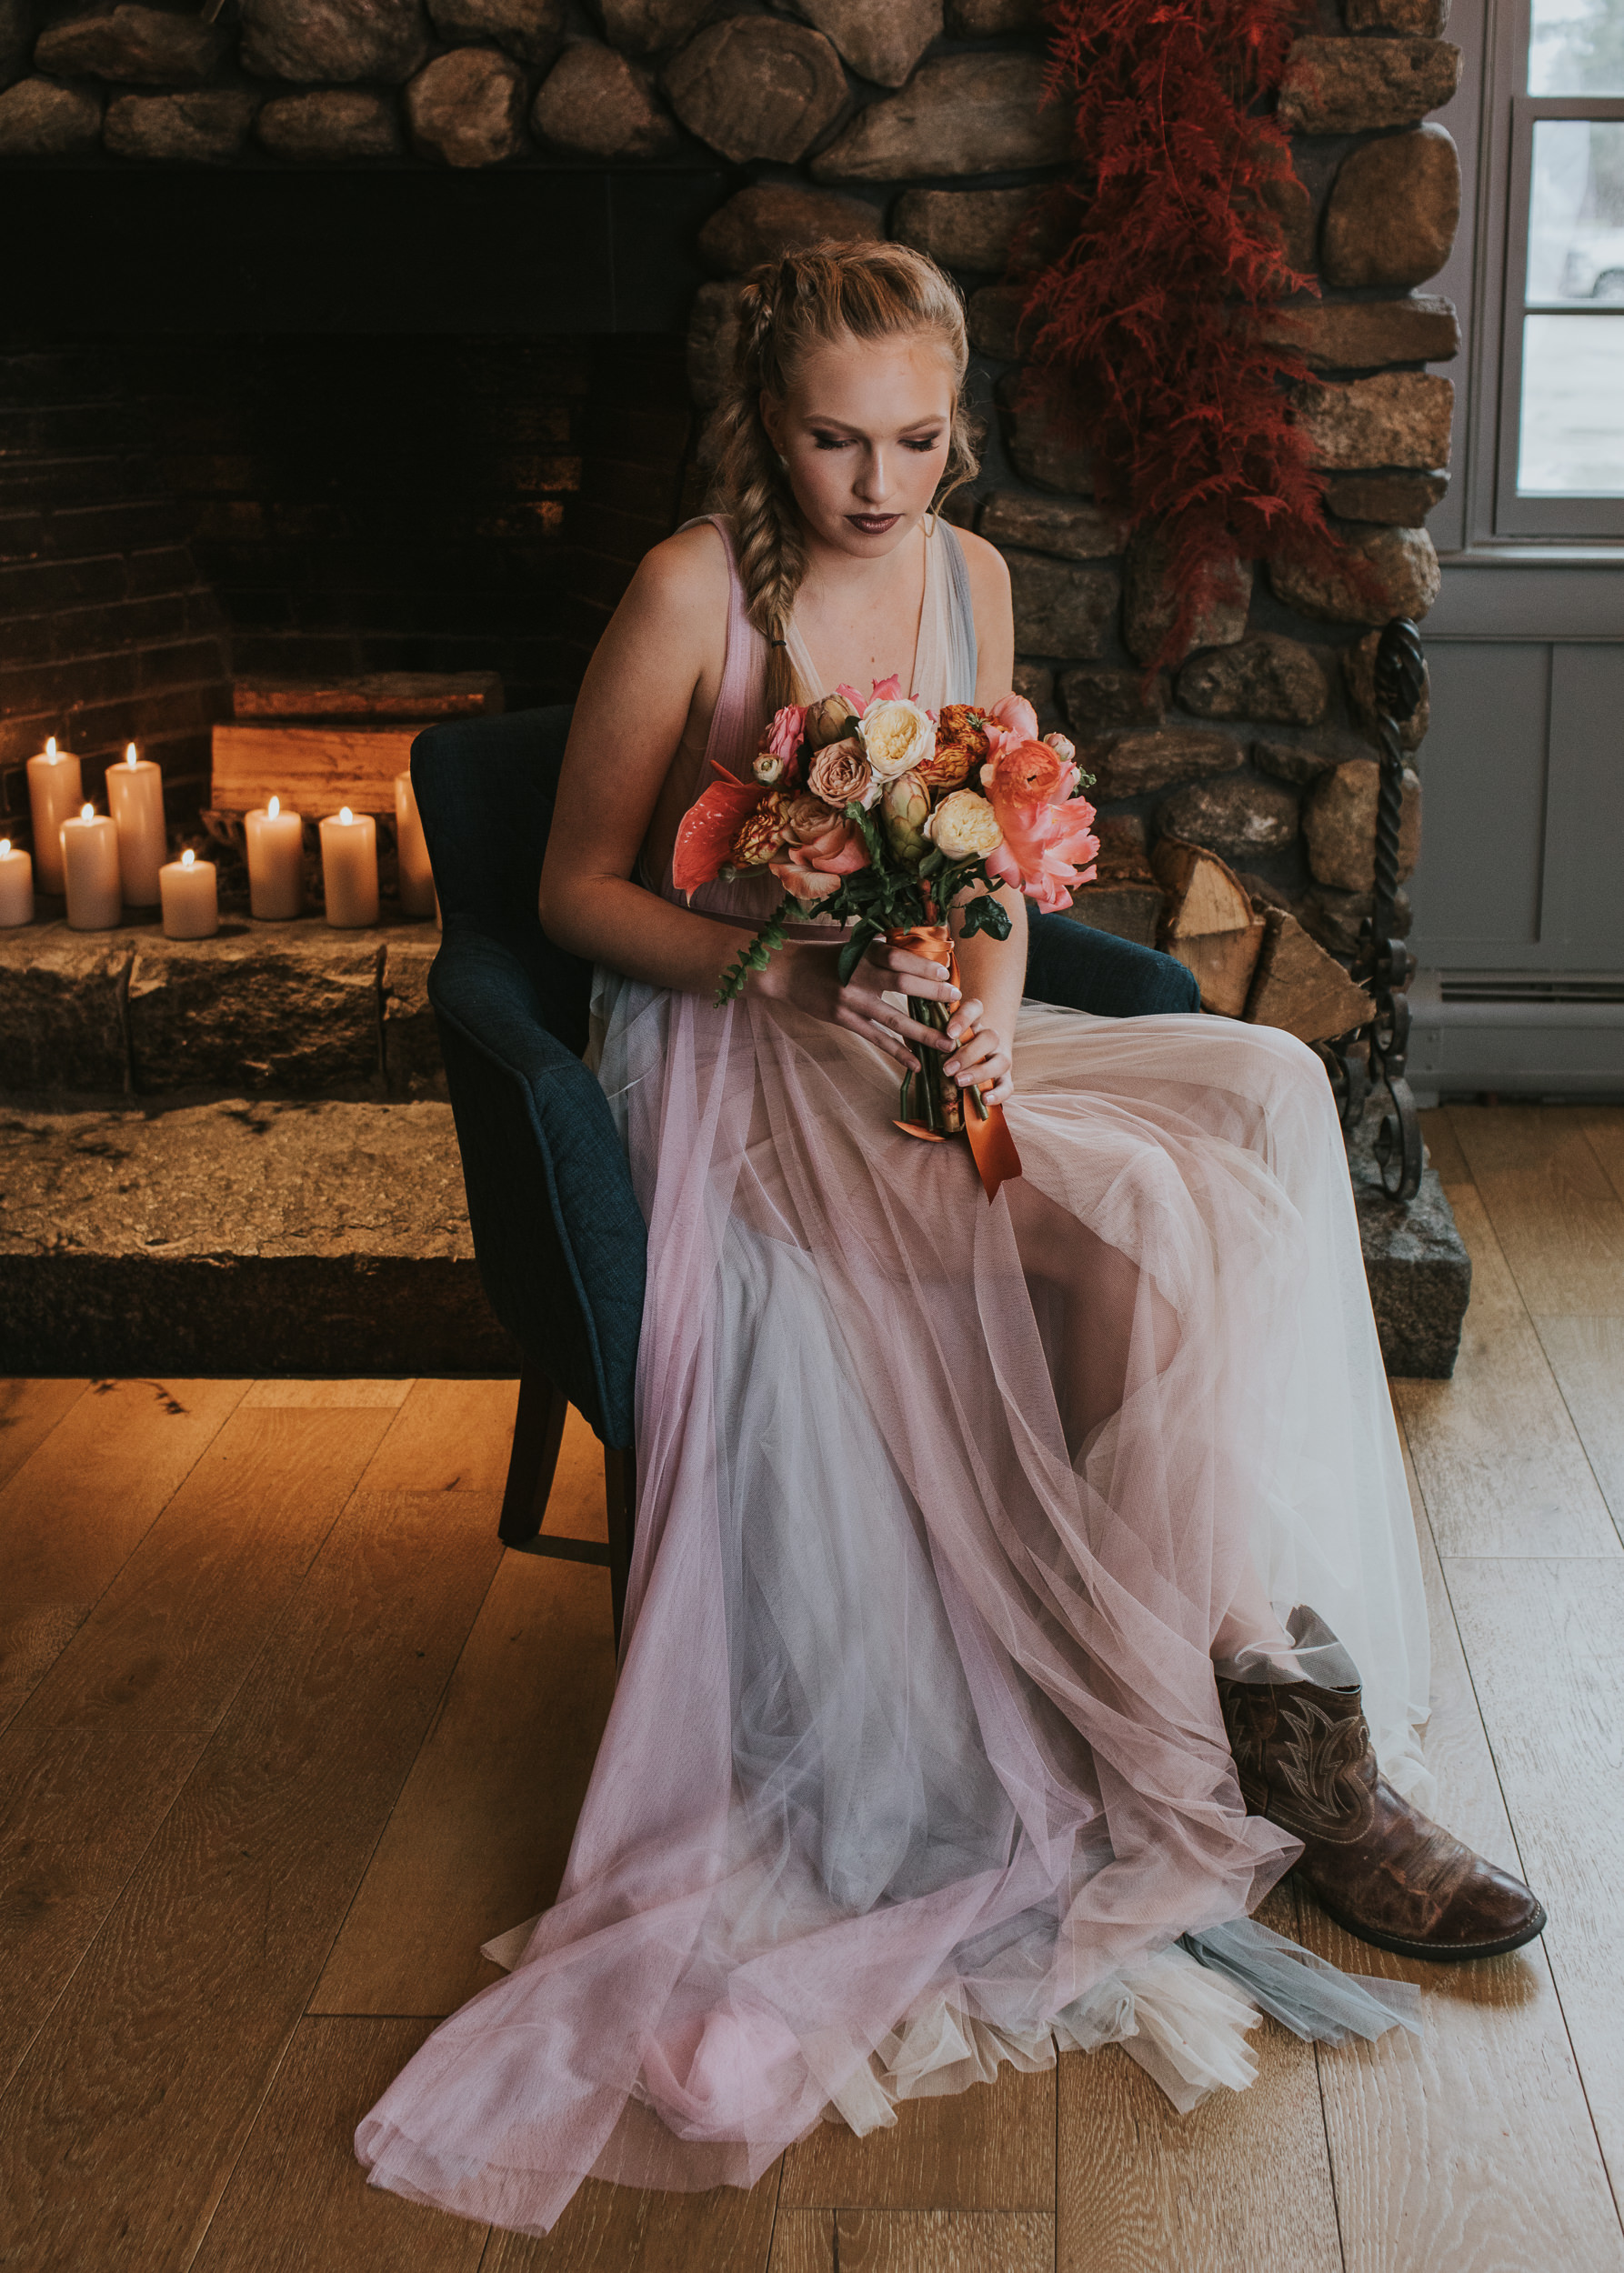 Walkers Maine Wedding Styled Photoshoot Minka Flowers © Heidi Kirn Photography 451288.jpg